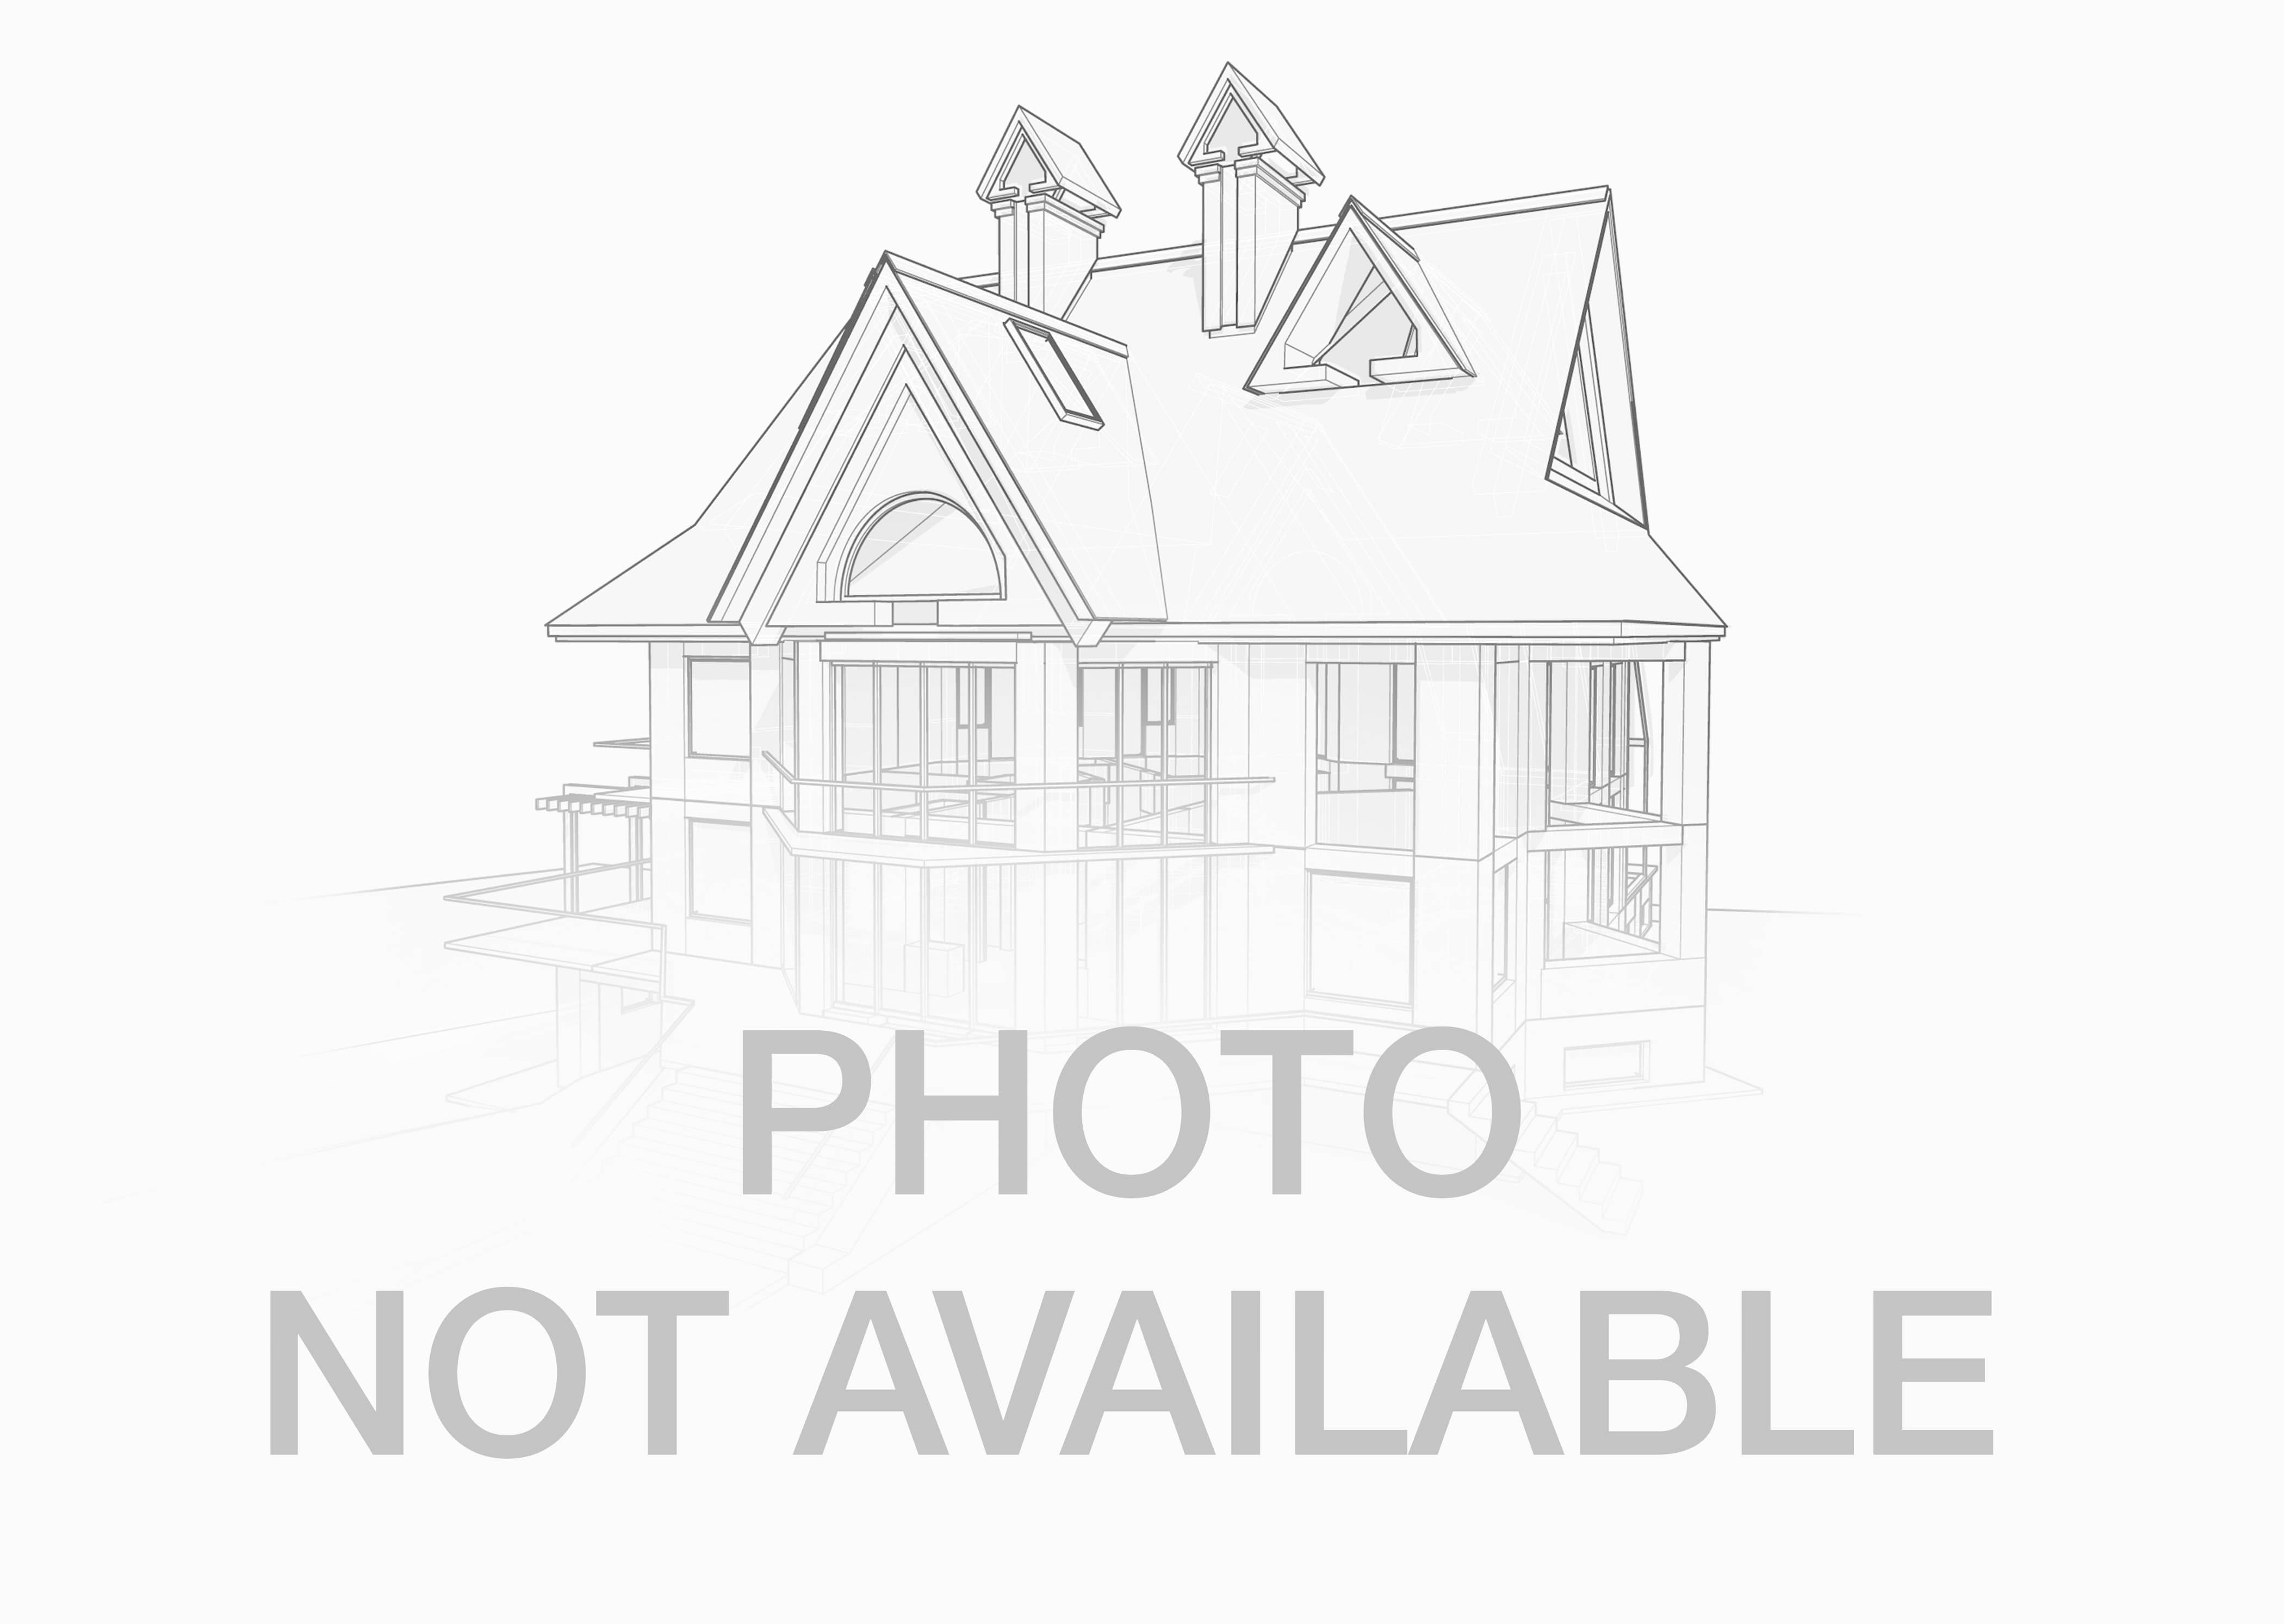 5330 Lakeview Drive, Powell, OH 43065 - MLS ID 218016157 on